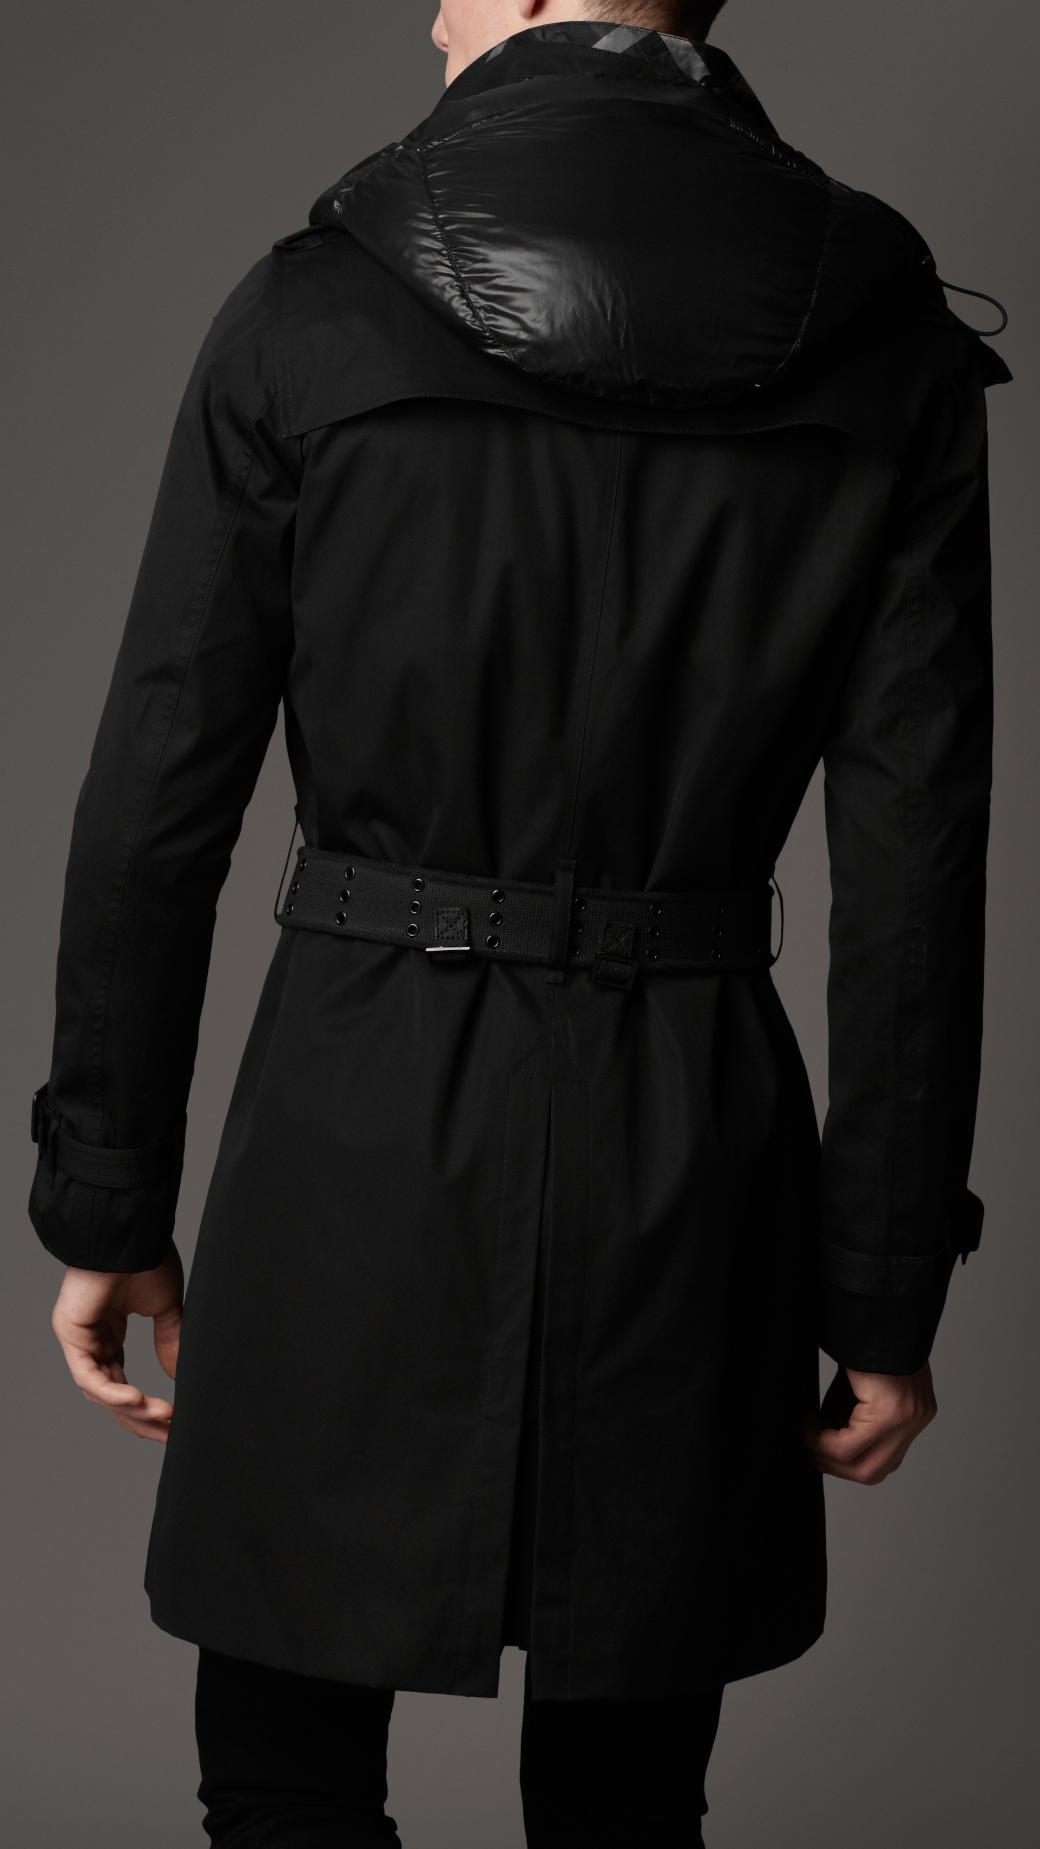 New Style Mens Trench Coat Fashion Single Breasted ...   Mens Trench Coat With Hood